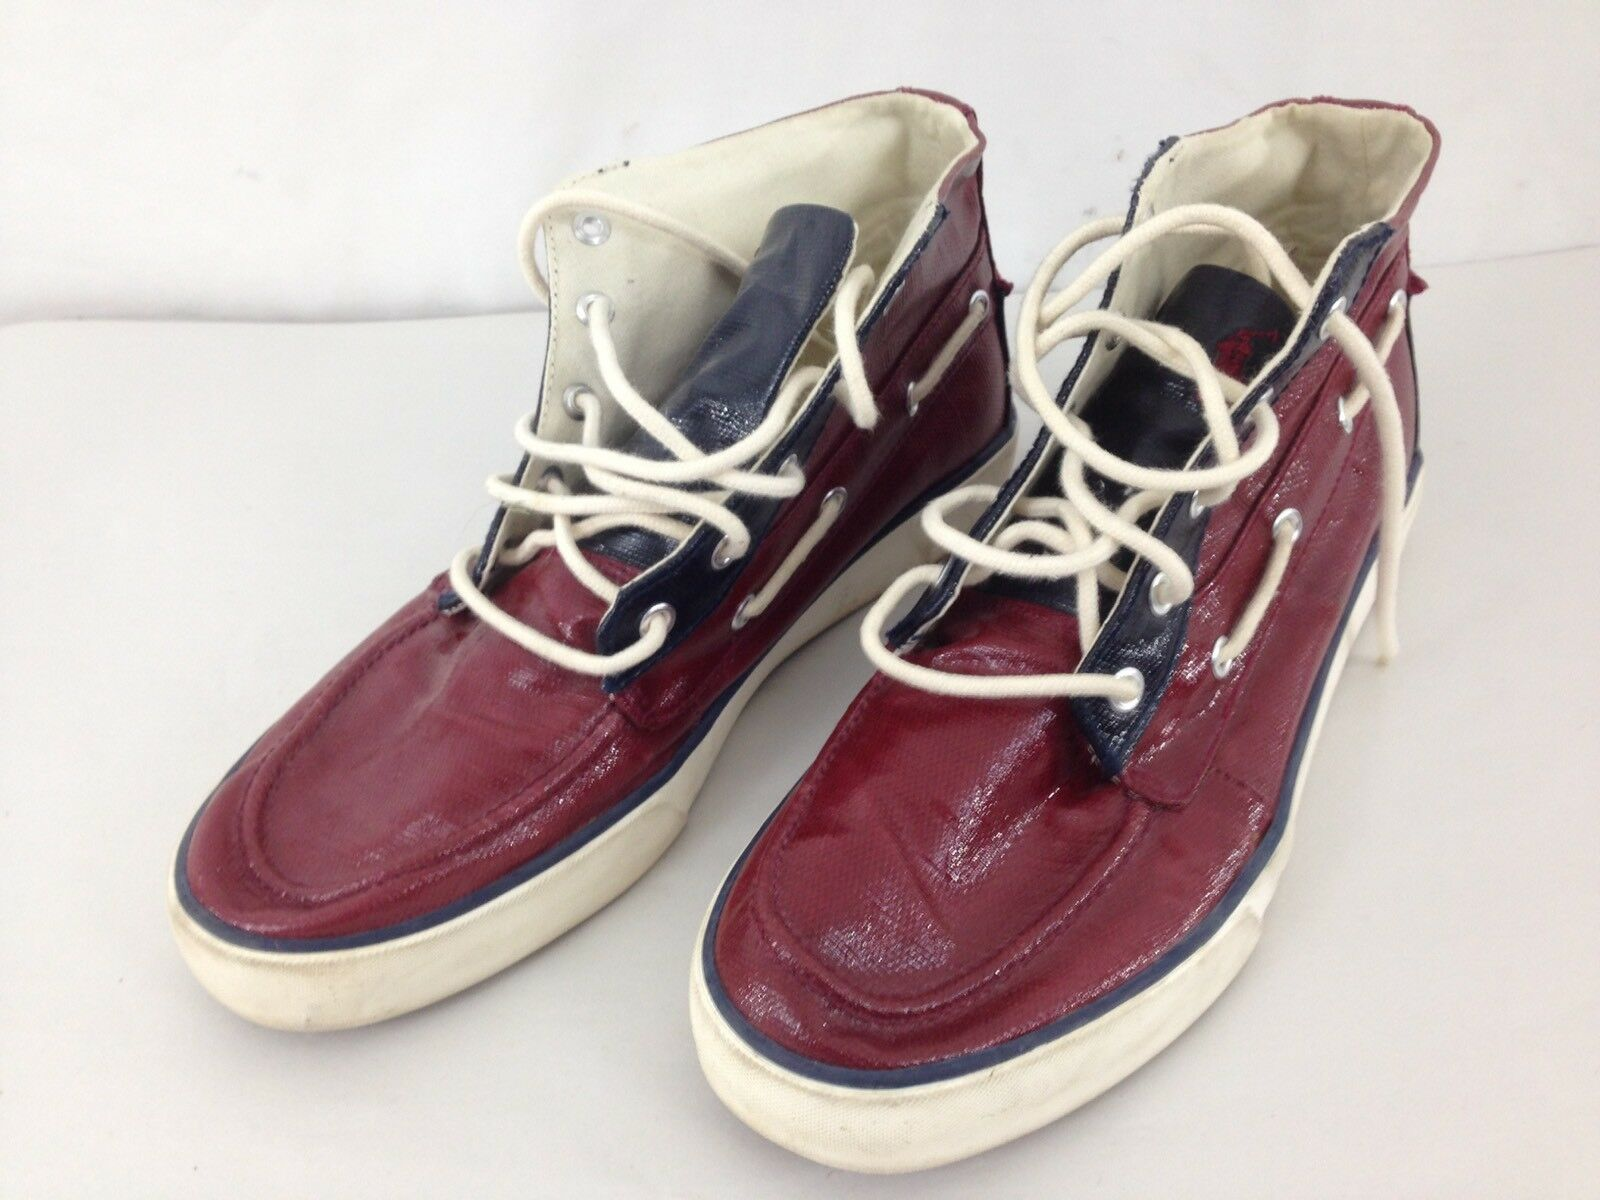 Primary image for Ralph Lauren Polo Mens 10D Burgundy Lace Up Lander Chukka Sneakers Shoes